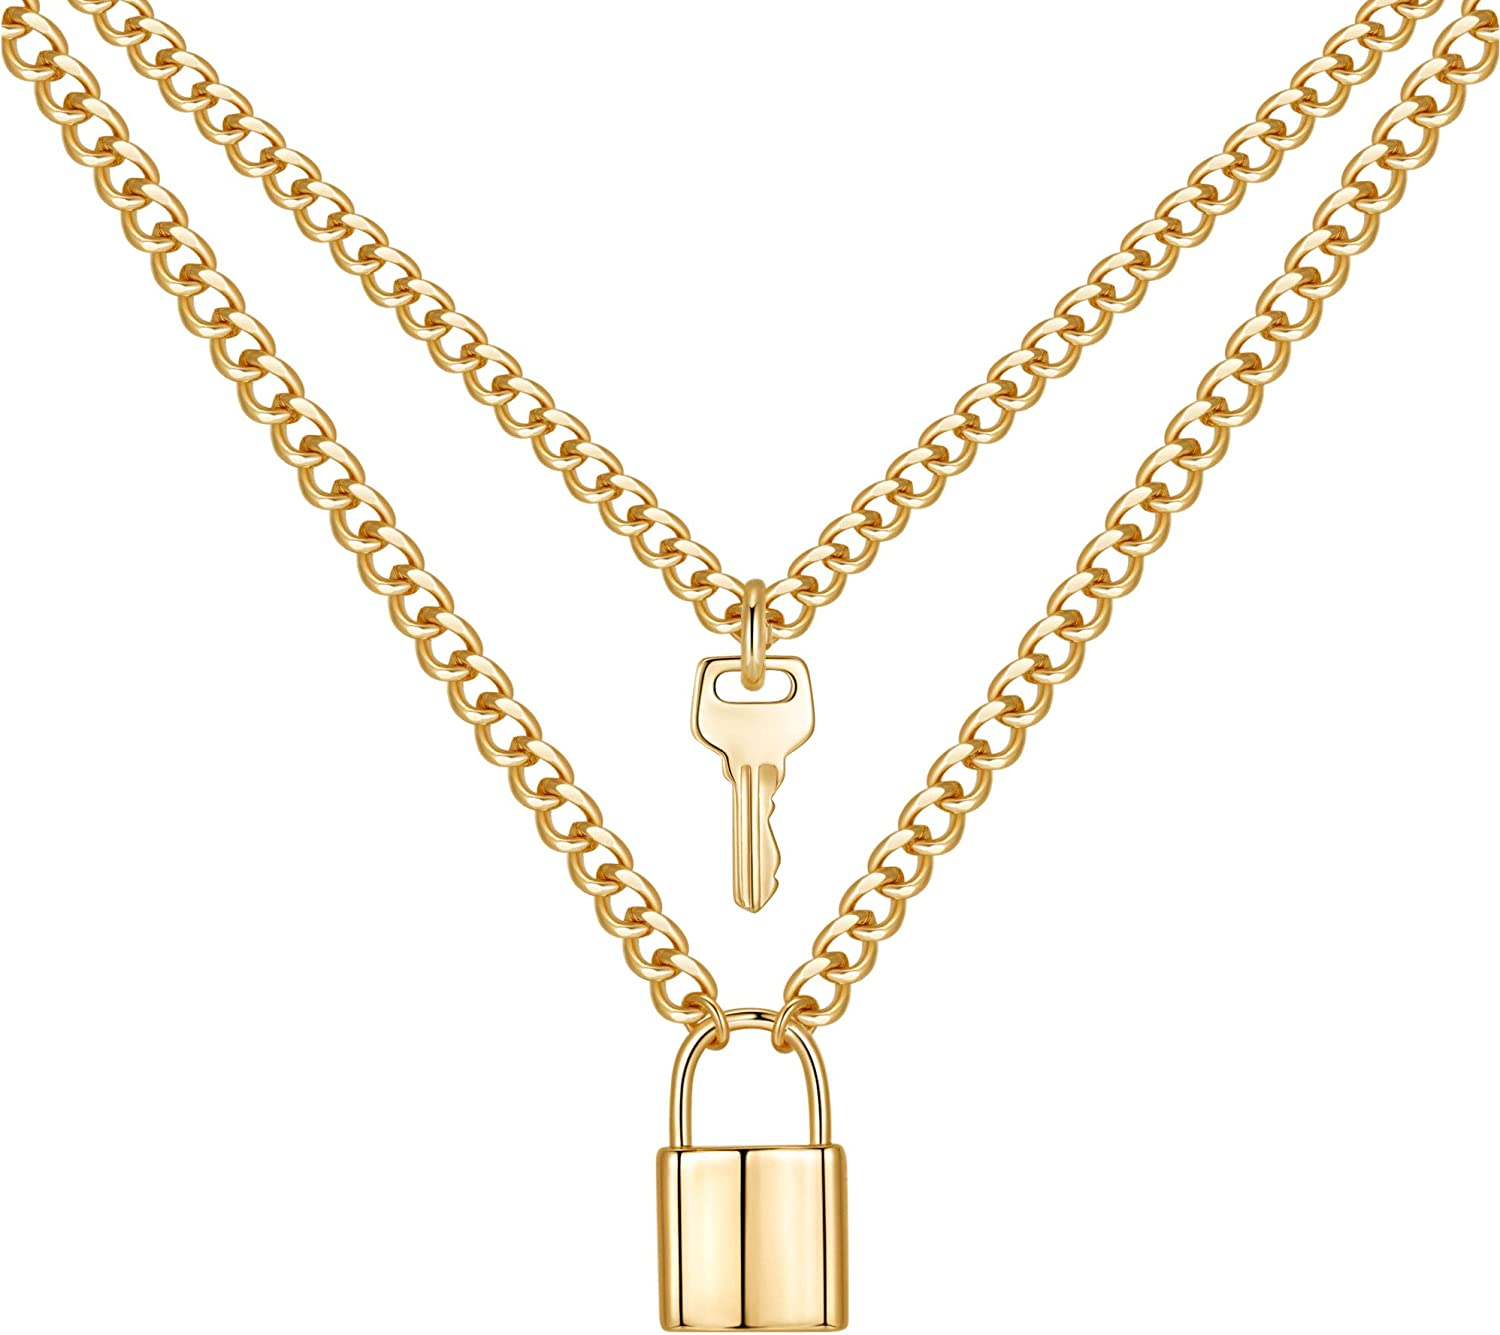 MONOZO Lock Necklace for Women, 14K Gold Filled Padlock Lock Pendant Chain Necklace Girls Dainty Layered Lock and Key Choker Necklace Jewelry for Men